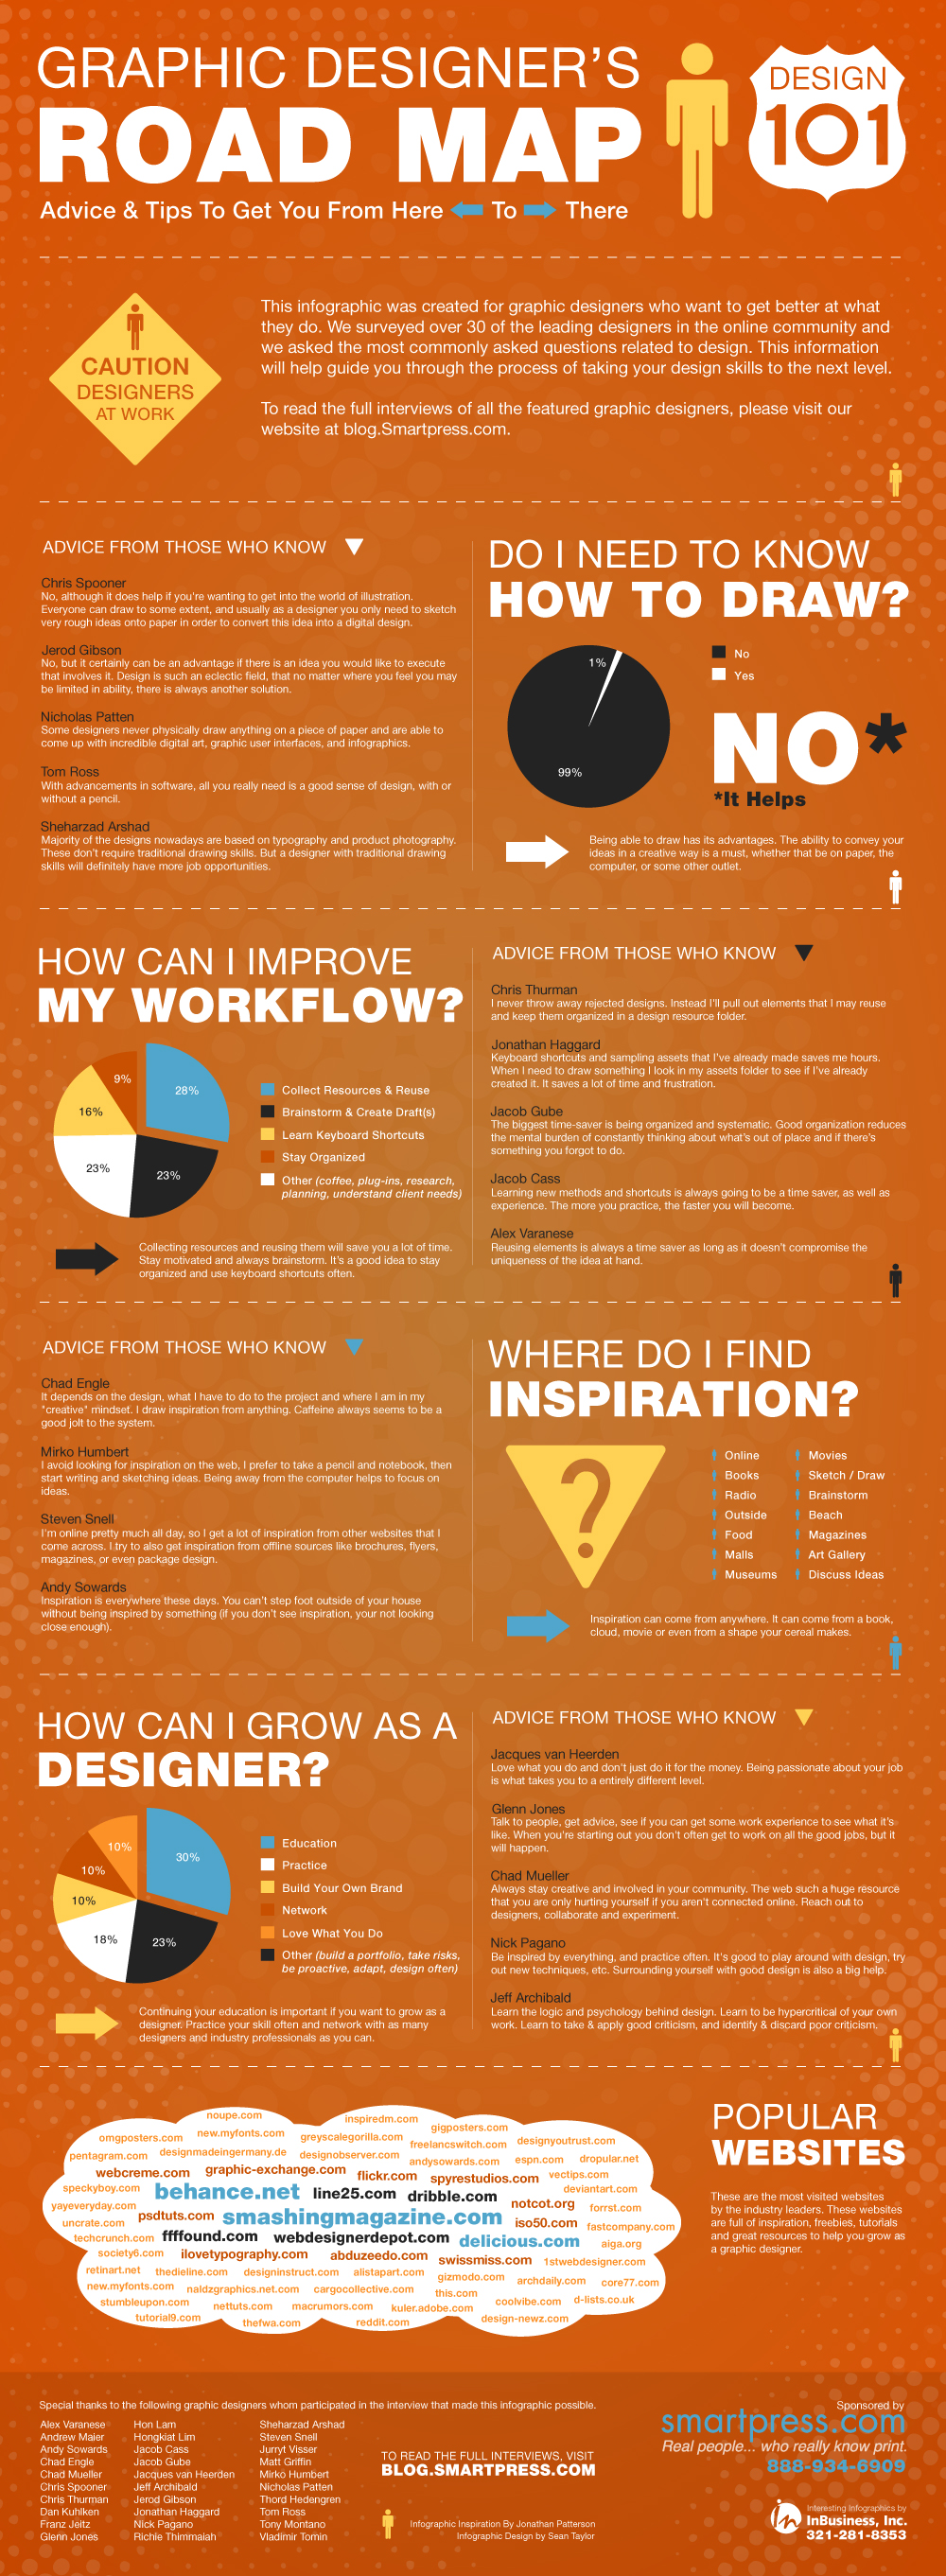 Advice And Tips On How To Be A Graphic Designer